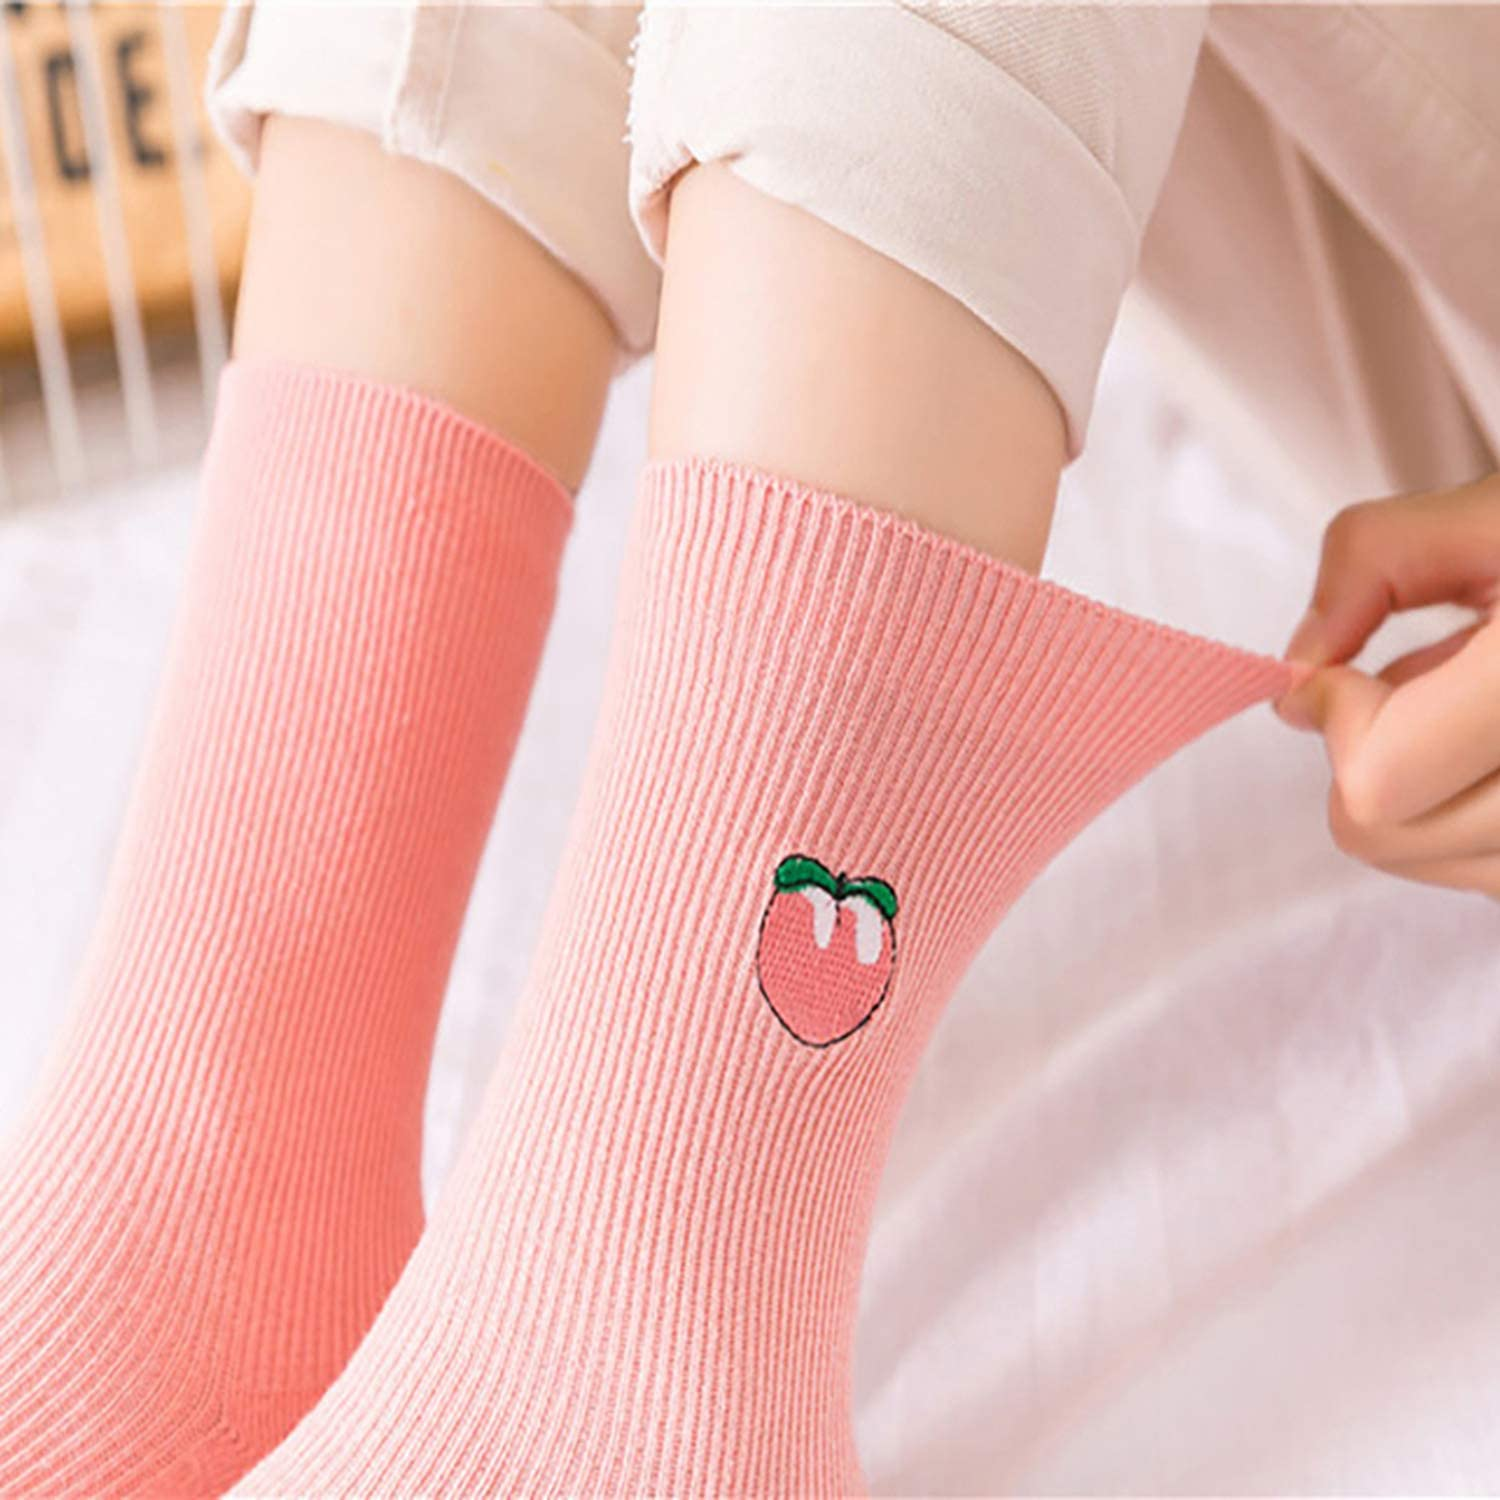 1//2 Pairs Cute Cartoon Fruit Print Avocado Banana Cherry Peach Girls Kawaii Socks Korean Harajuku Embroidery Heap Funny Socks